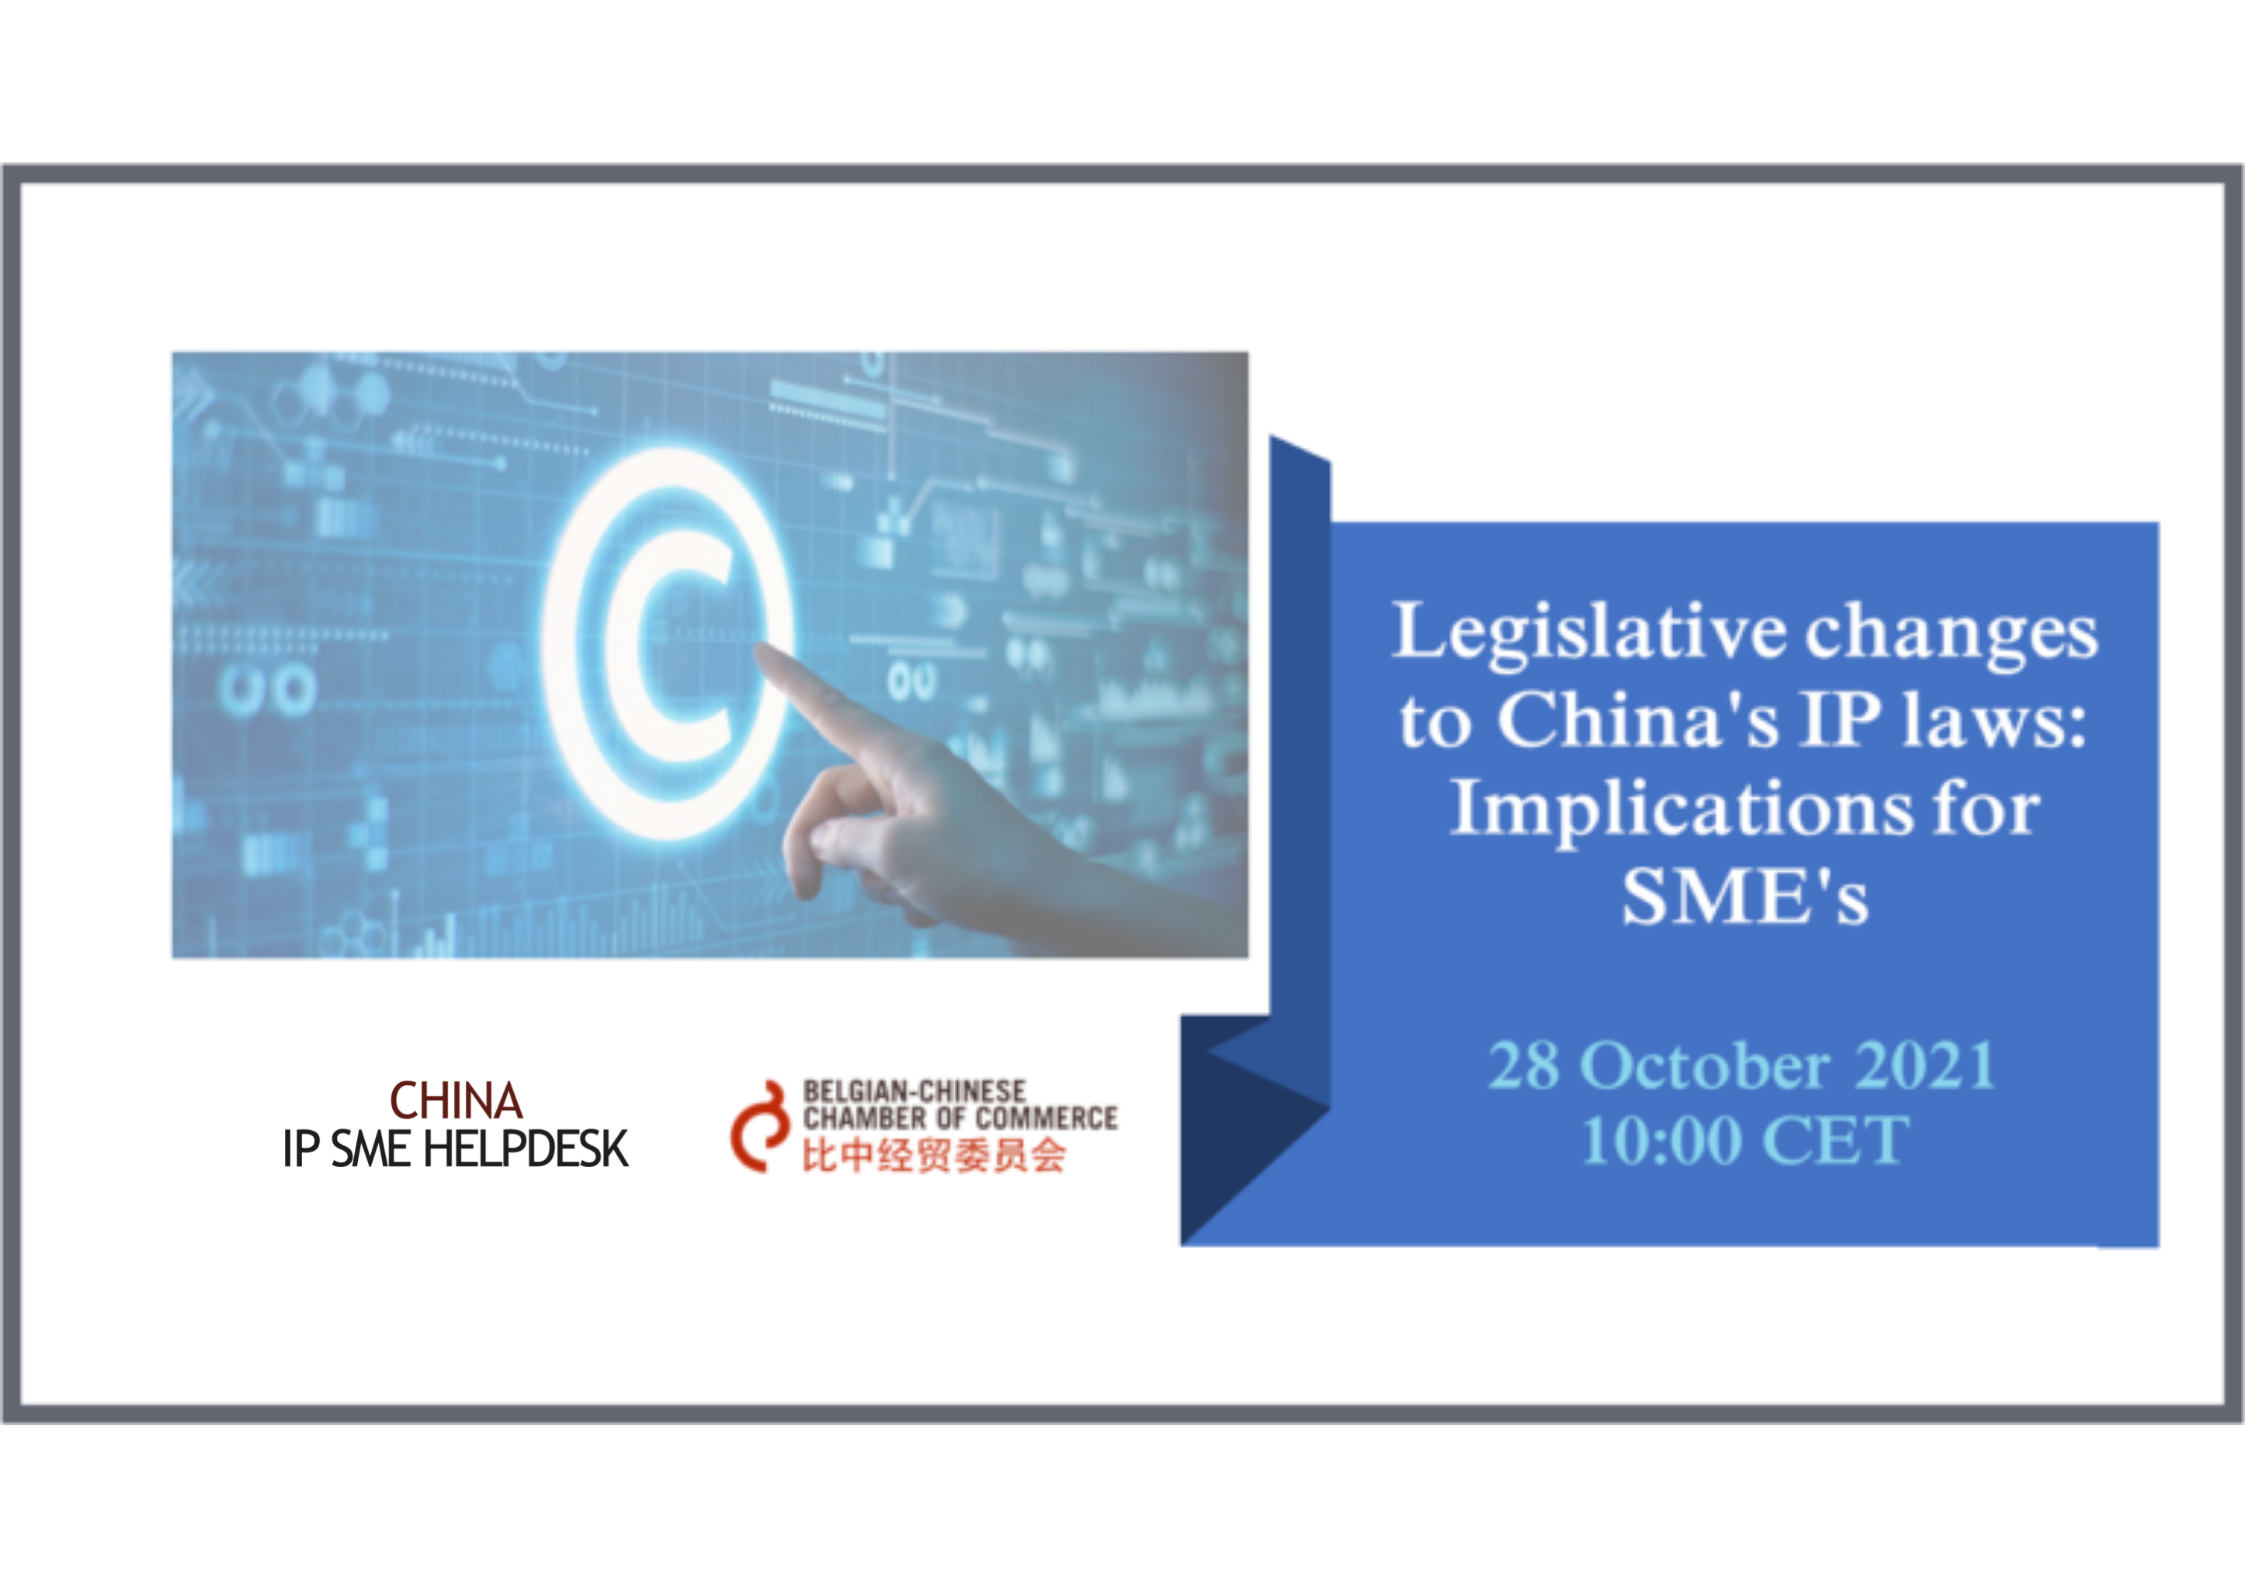 Legislative changes to China's IP laws: Implications for SME's